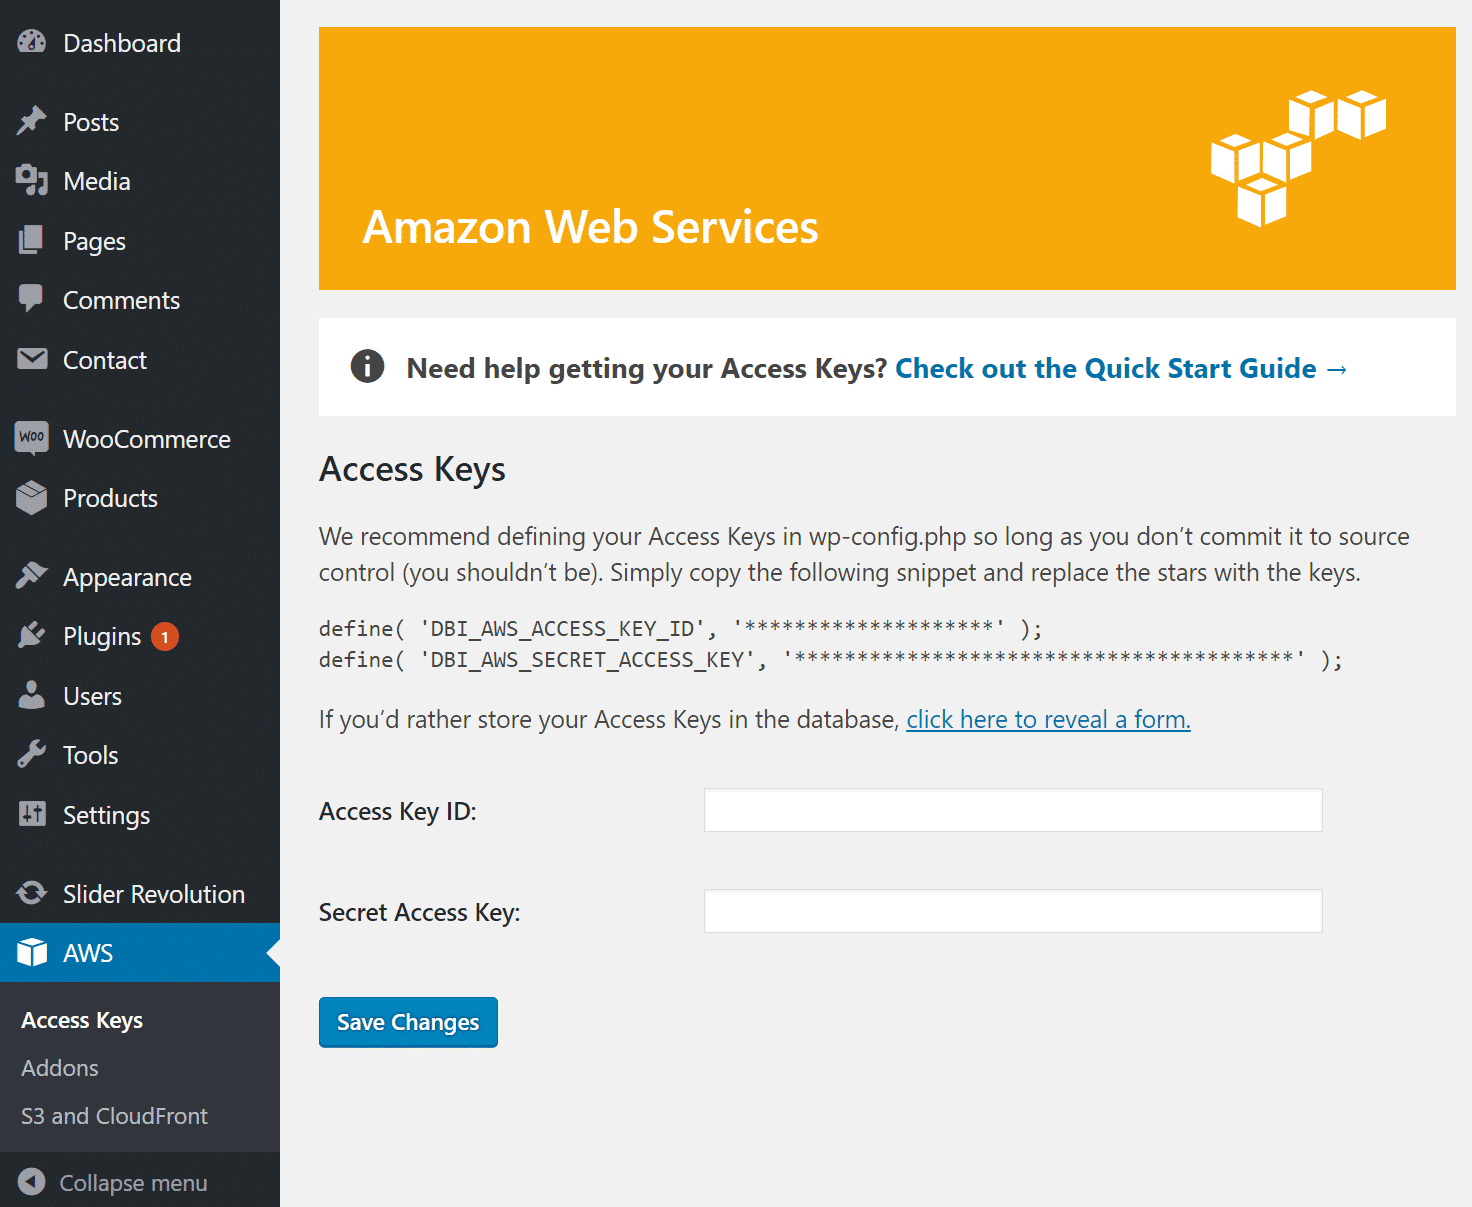 Branchement des services Web Amazon dans WordPress